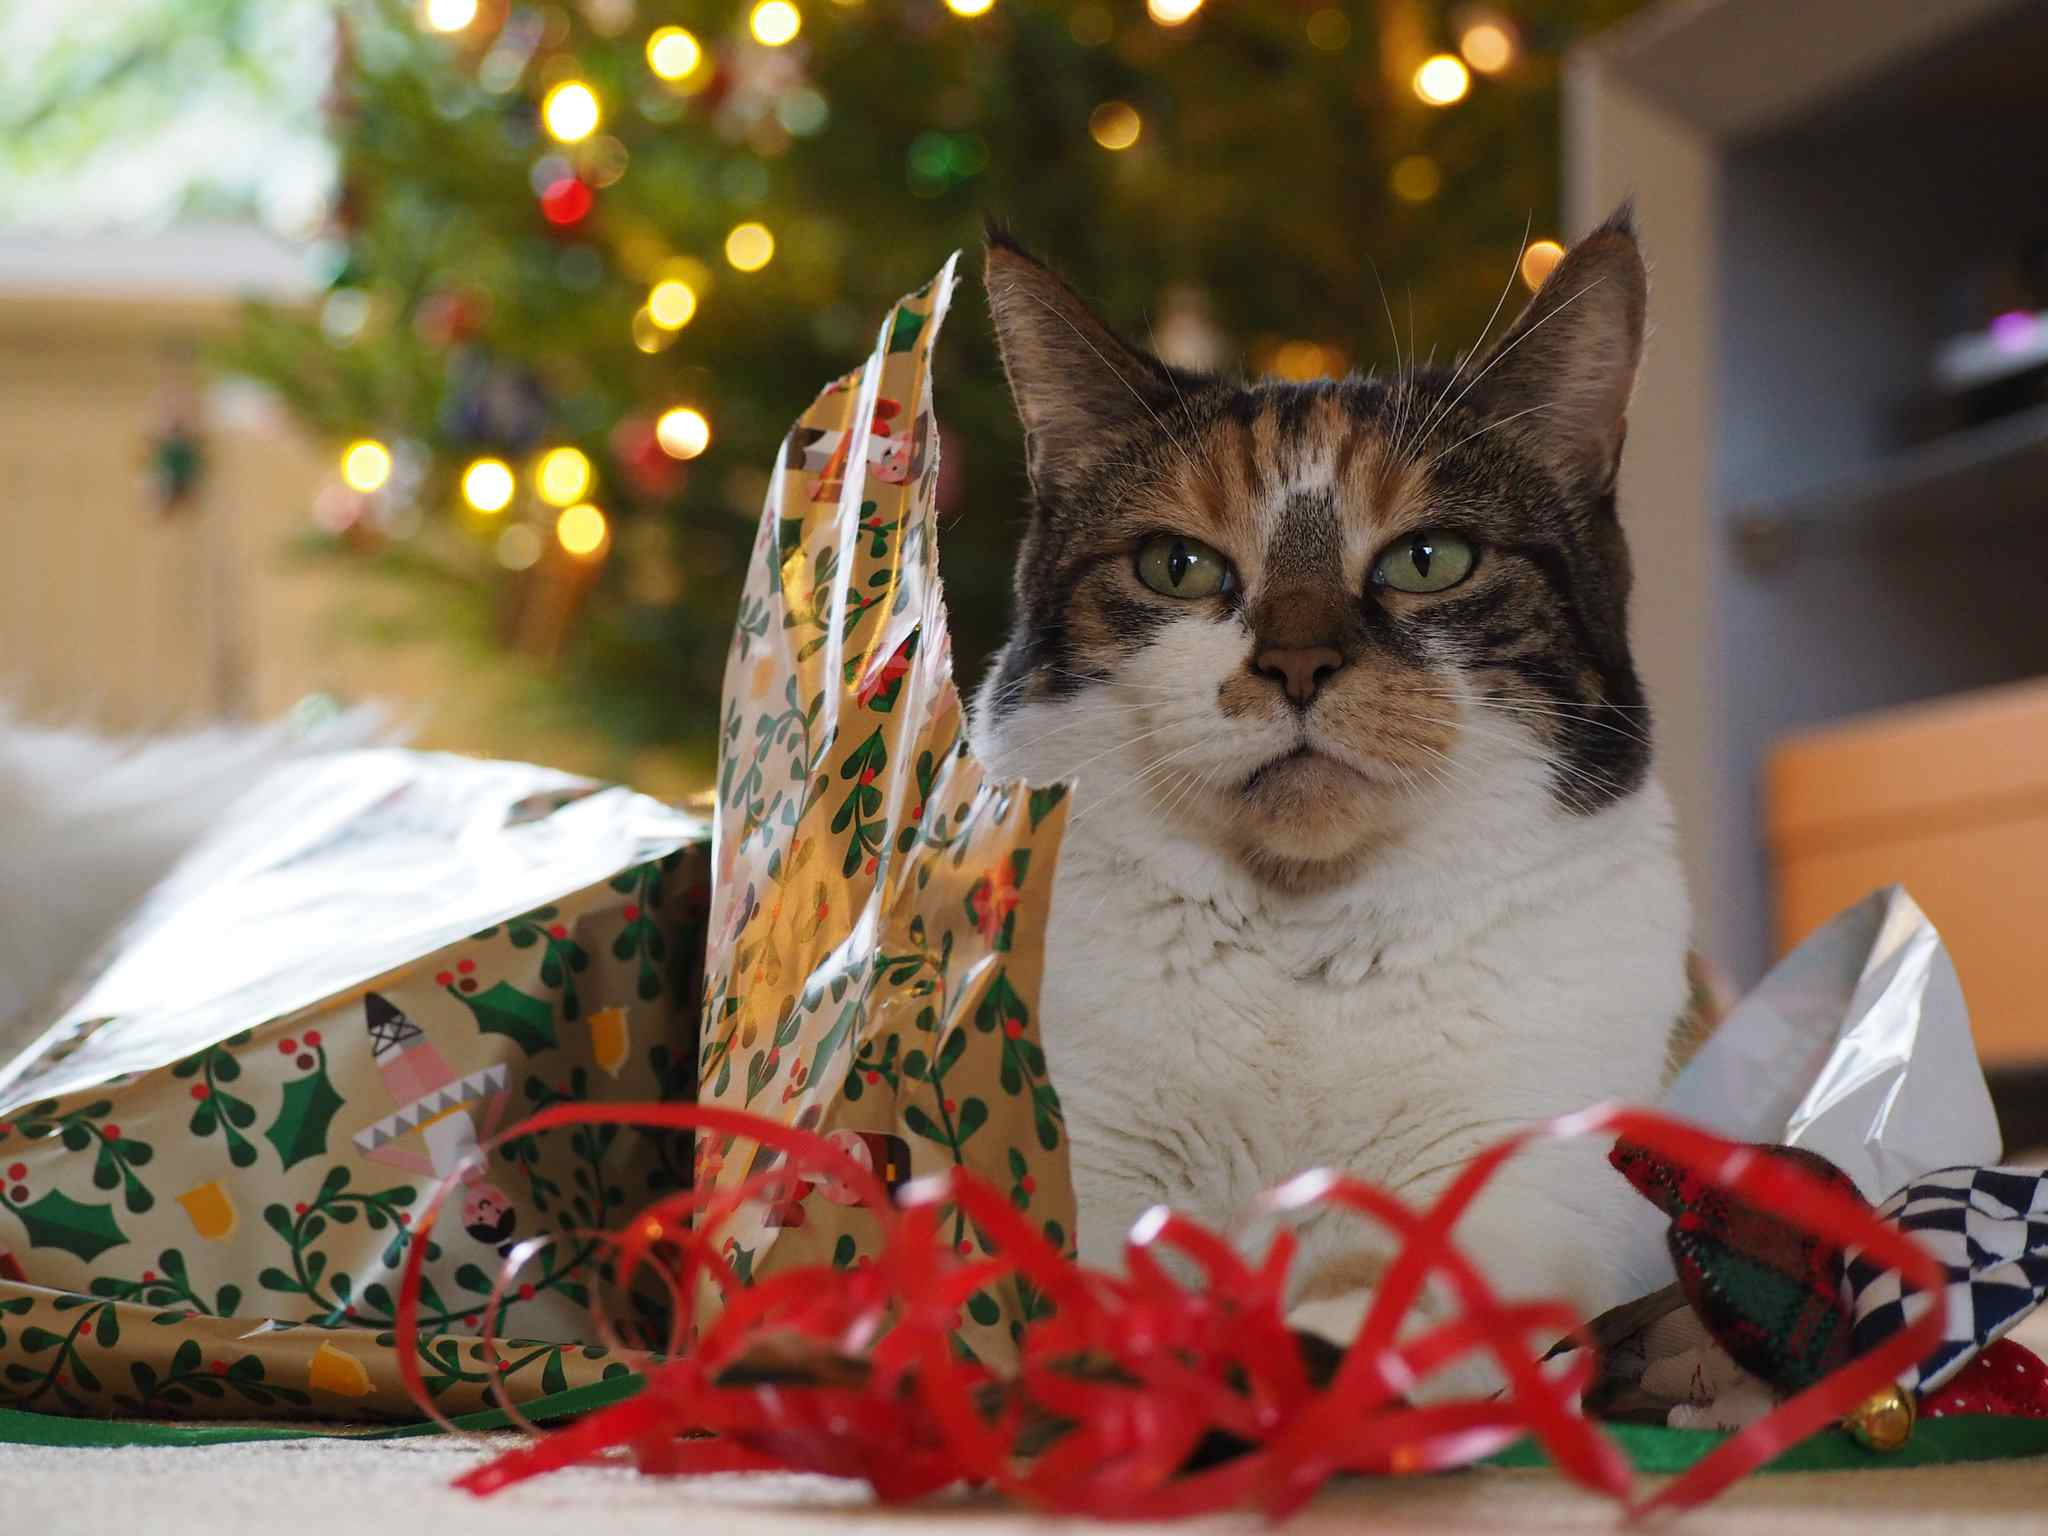 A cat sitting on torn wrapping paper